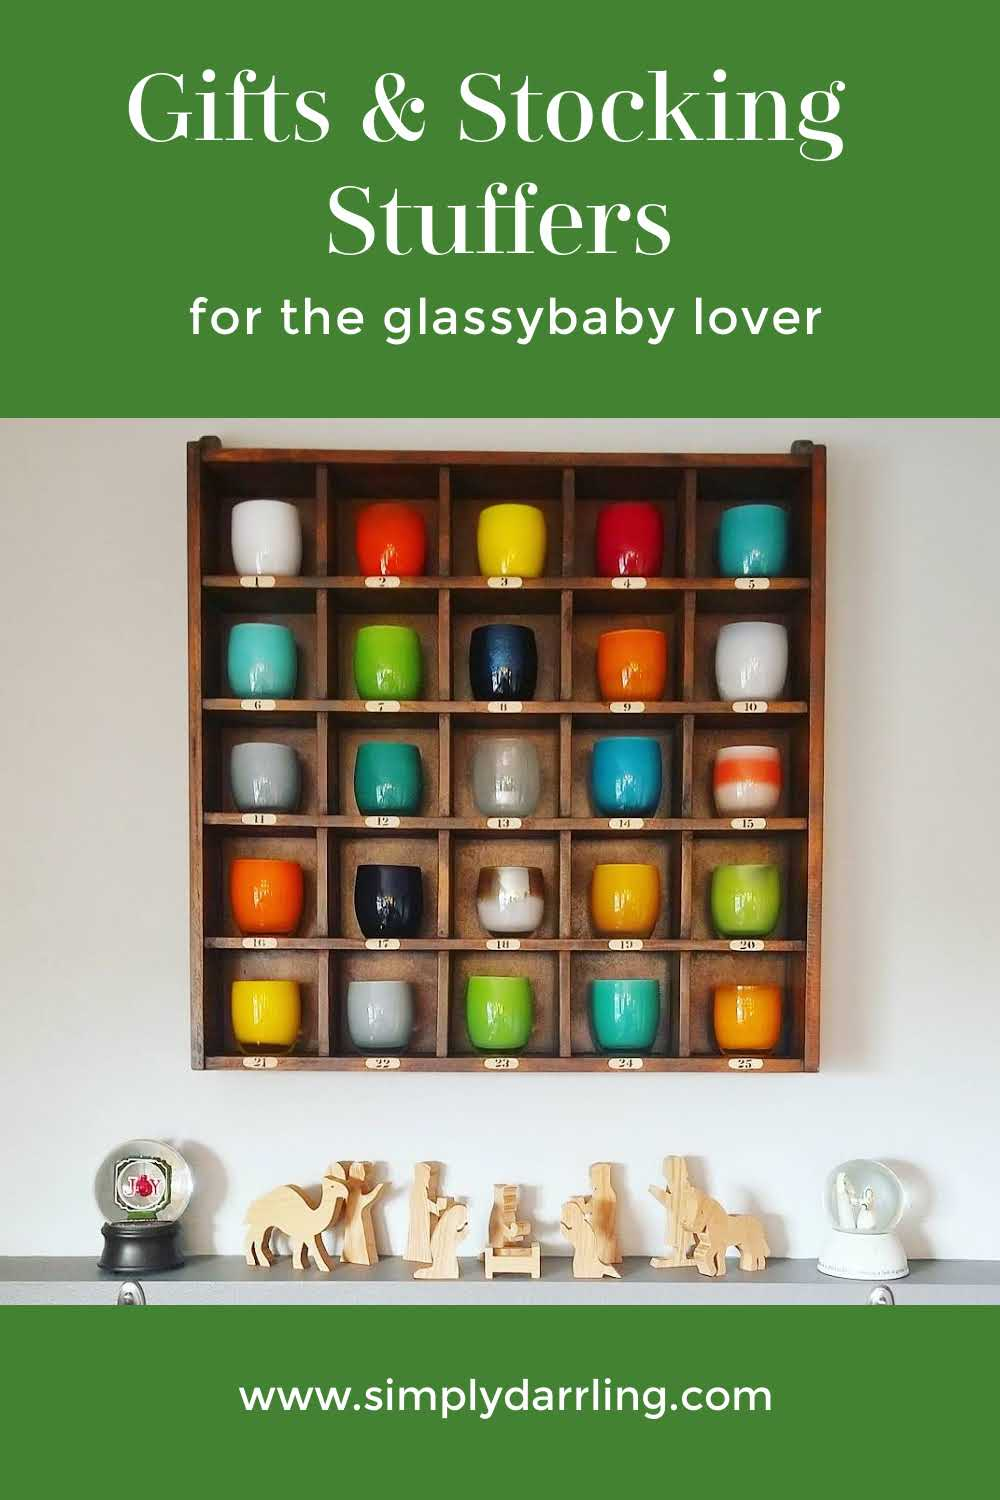 Cubby filled with Glassybaby